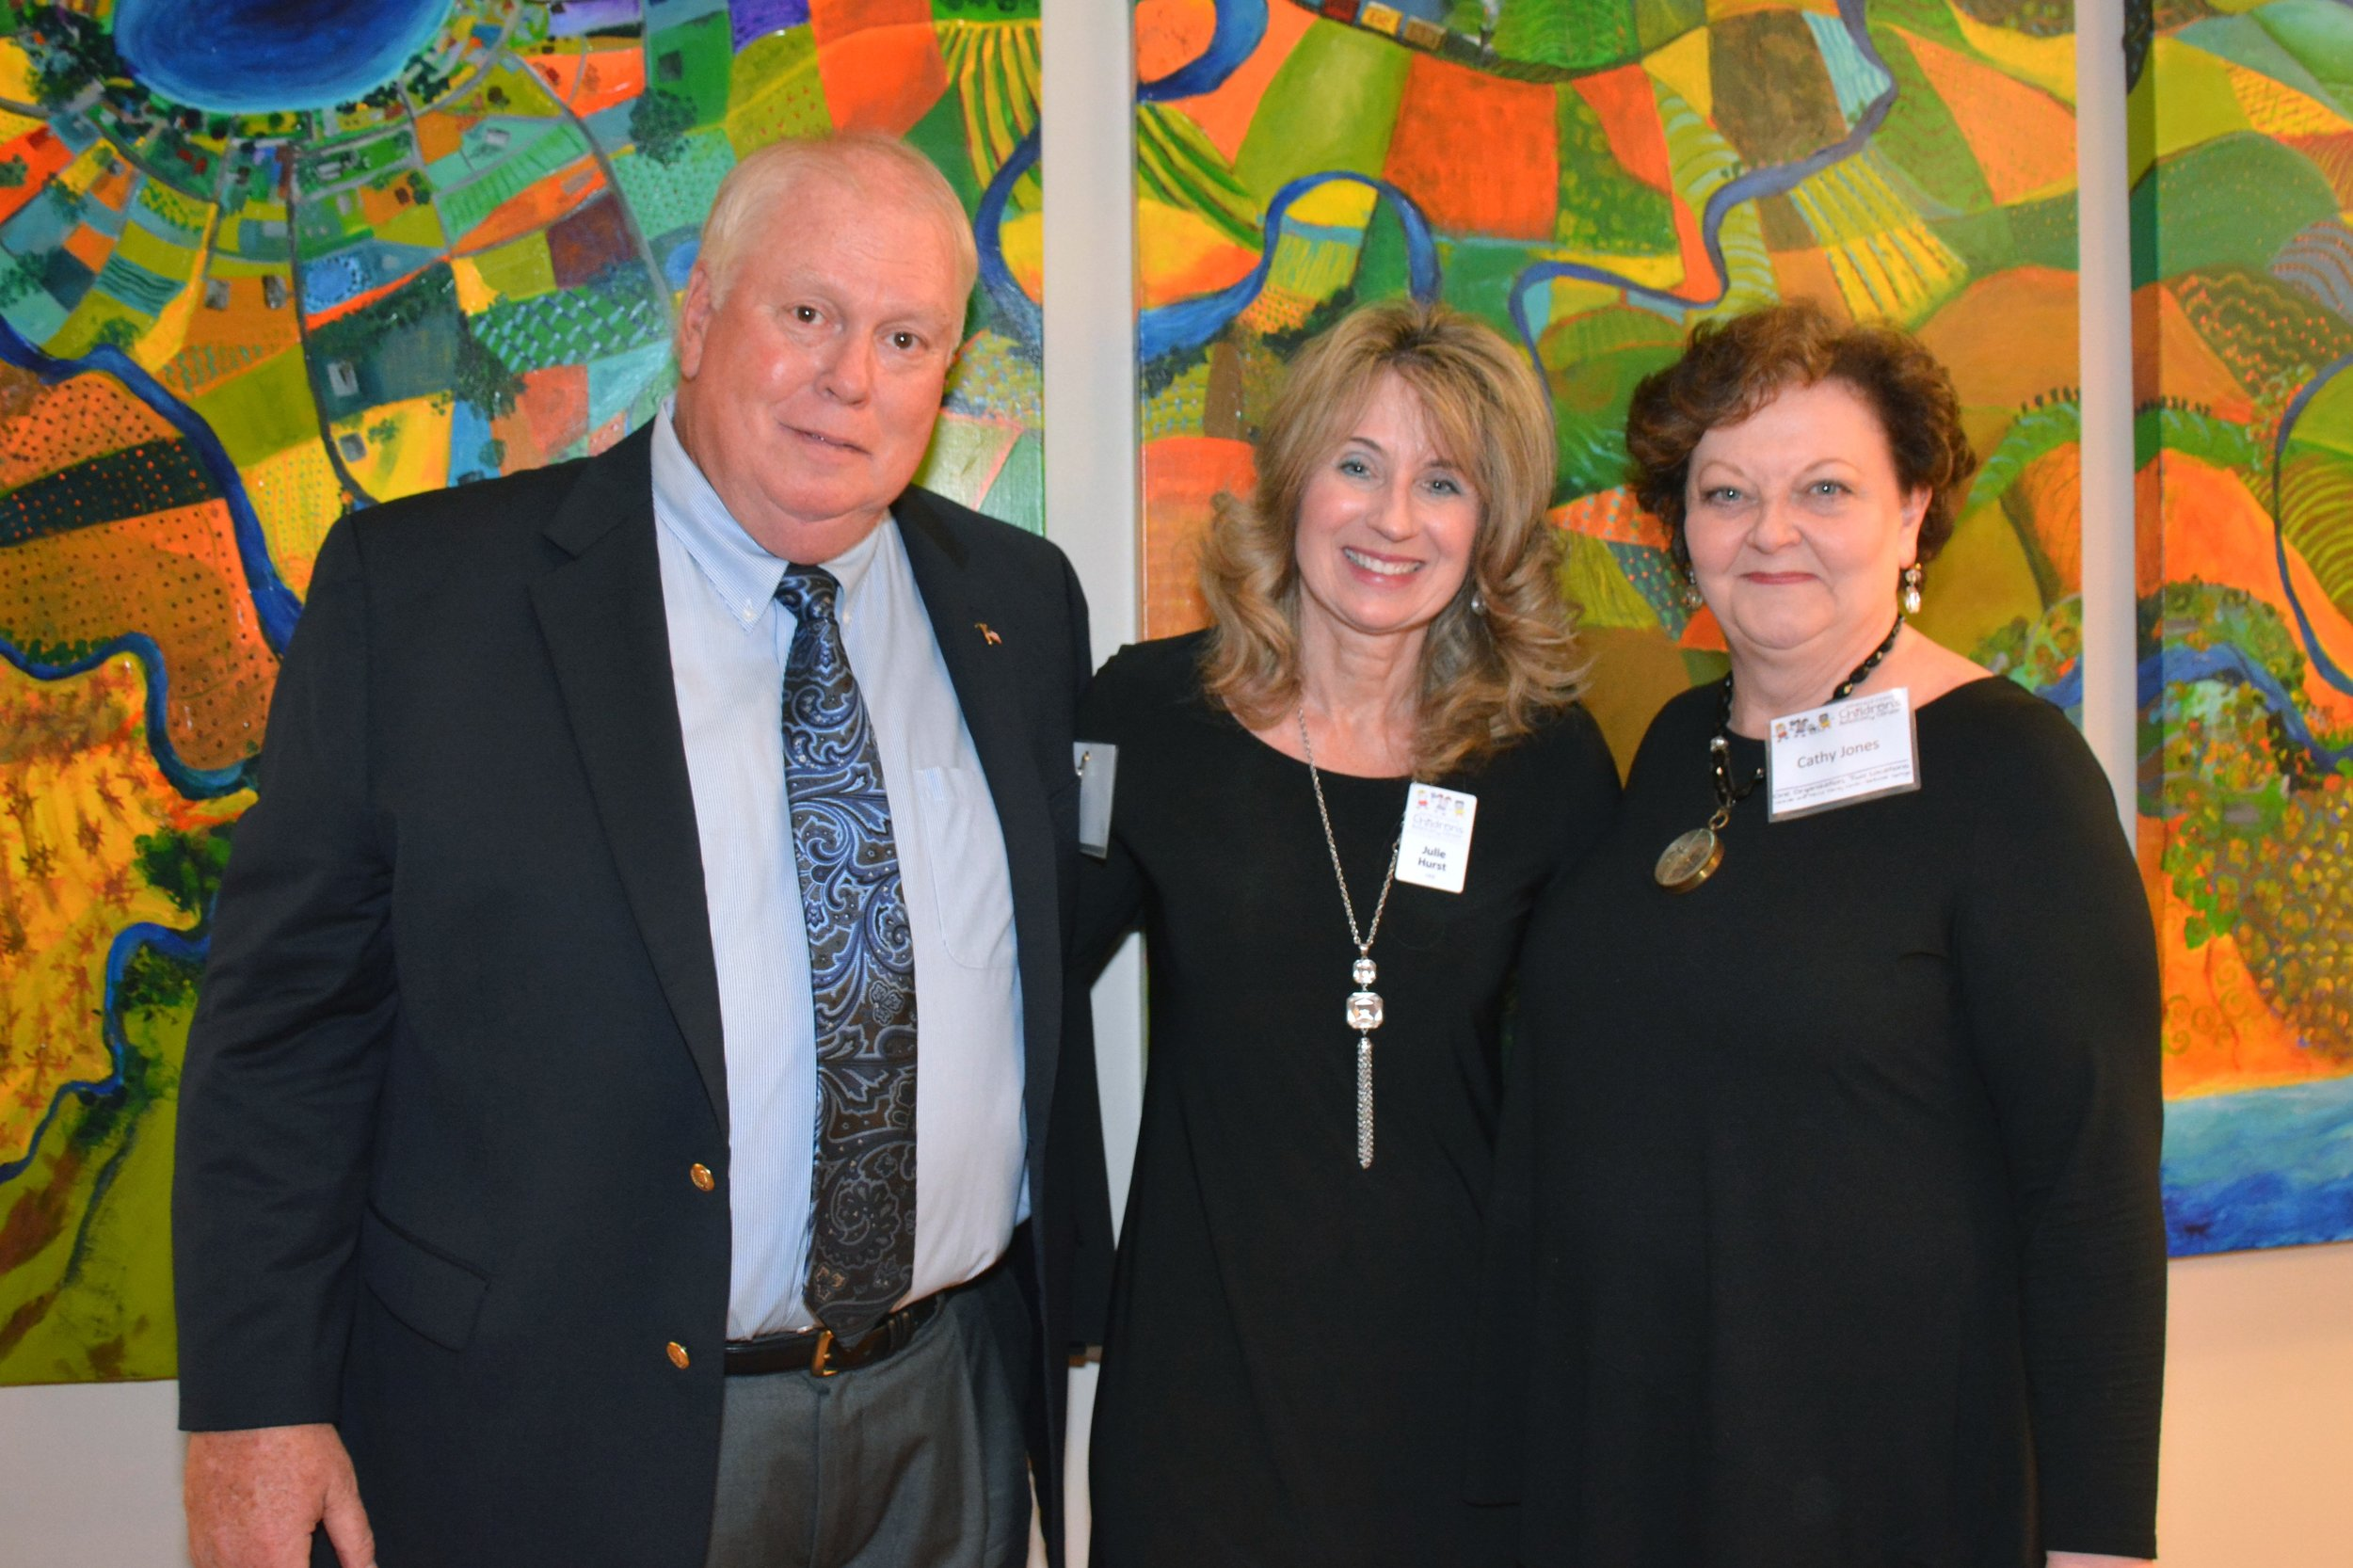 Terry Jones (left) pictured with Julie Hurst and his wife Cathy